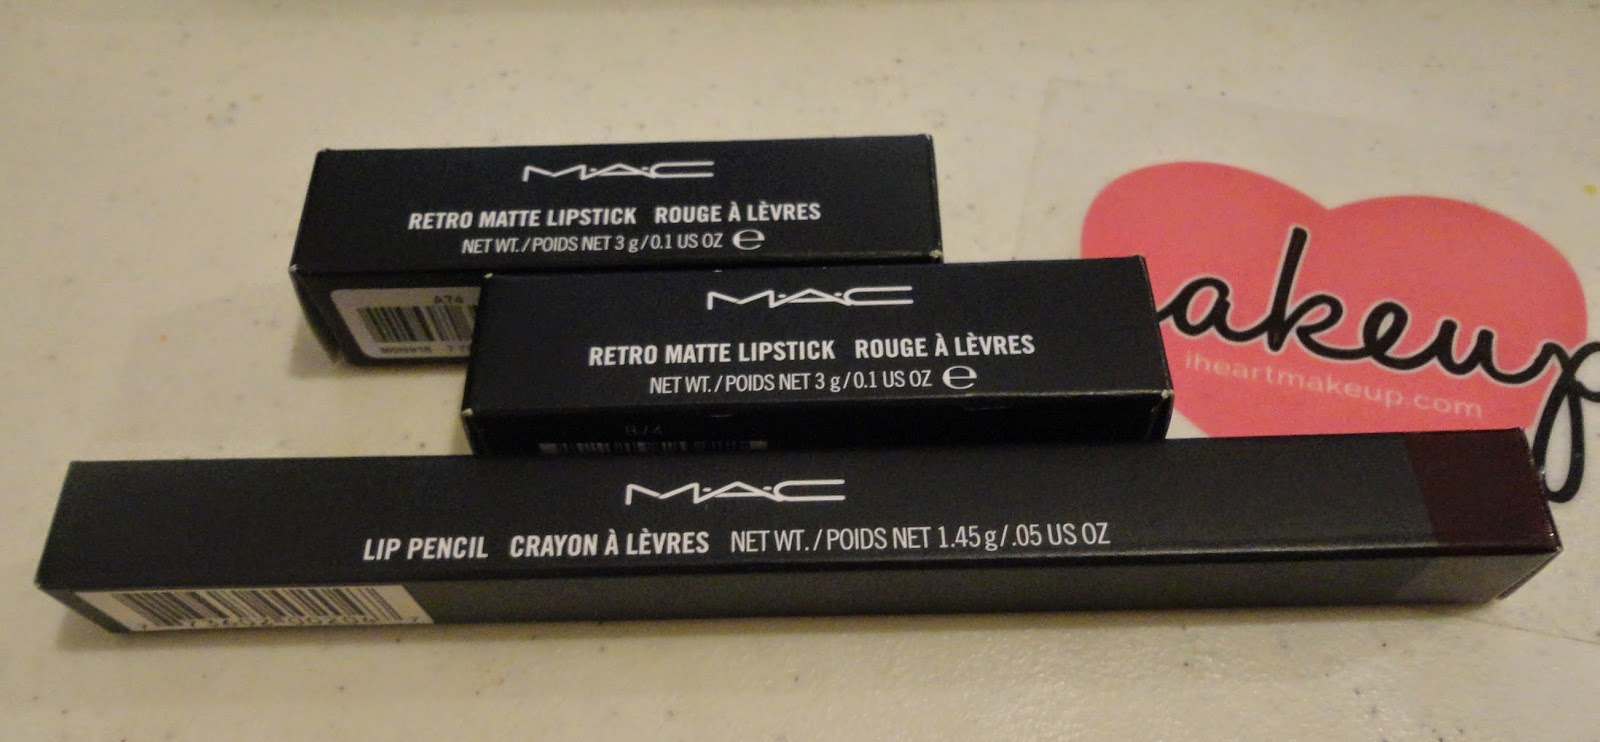 MAC Cosmetics Lipsticks & Lip Pencil